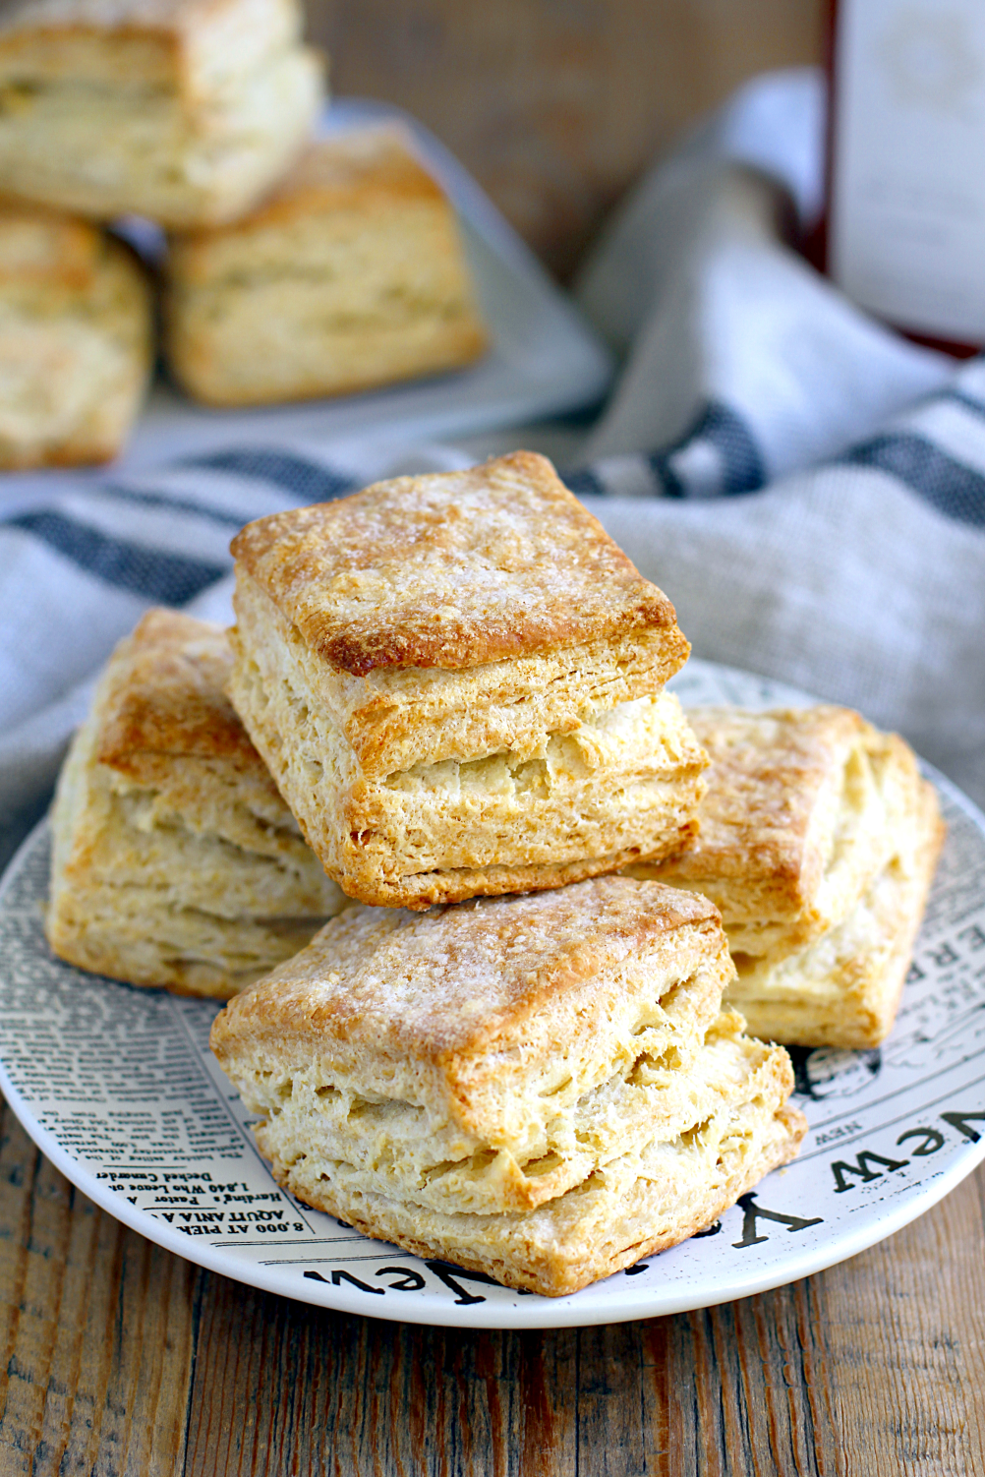 Image of flaky buttermilk biscuits.